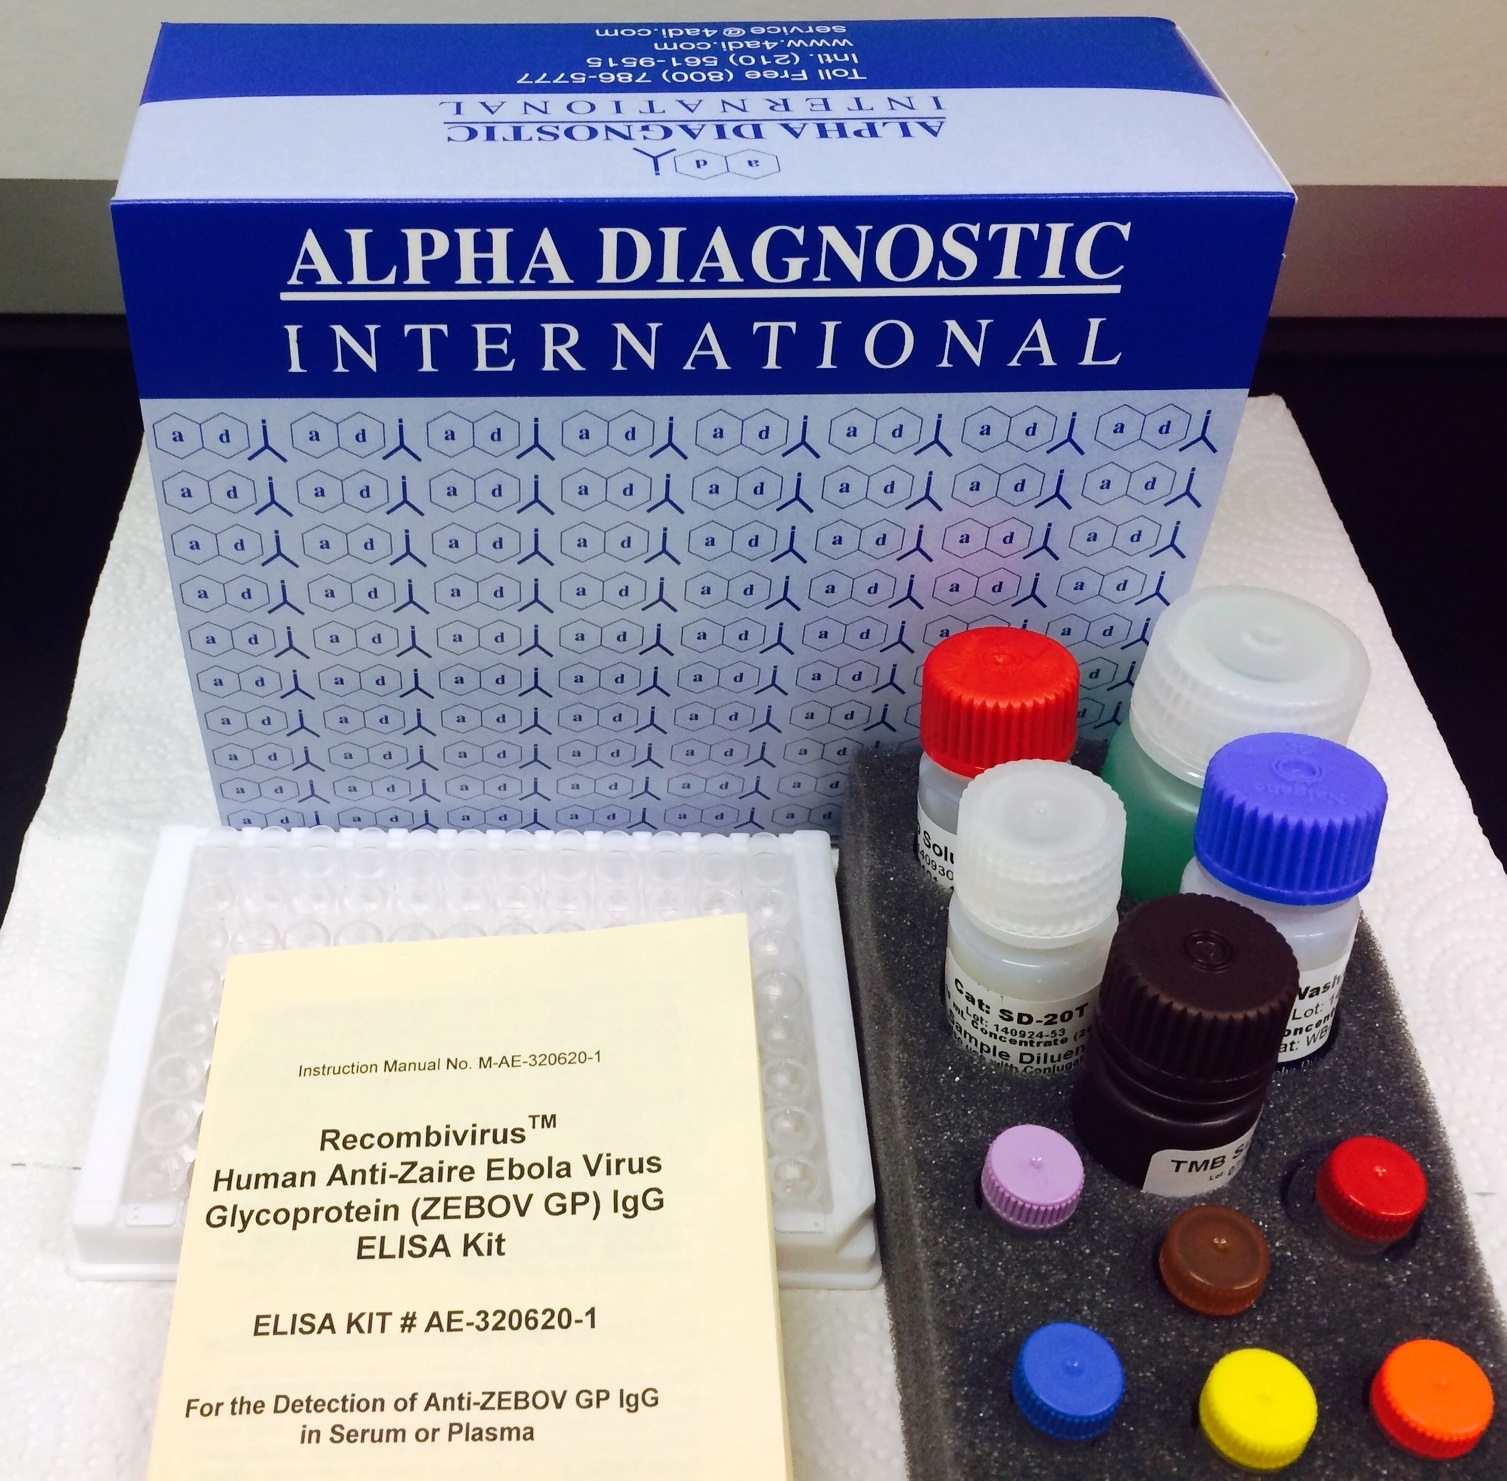 Ebola Detection Using Rapid Tests and ELISA Kits for Humans and